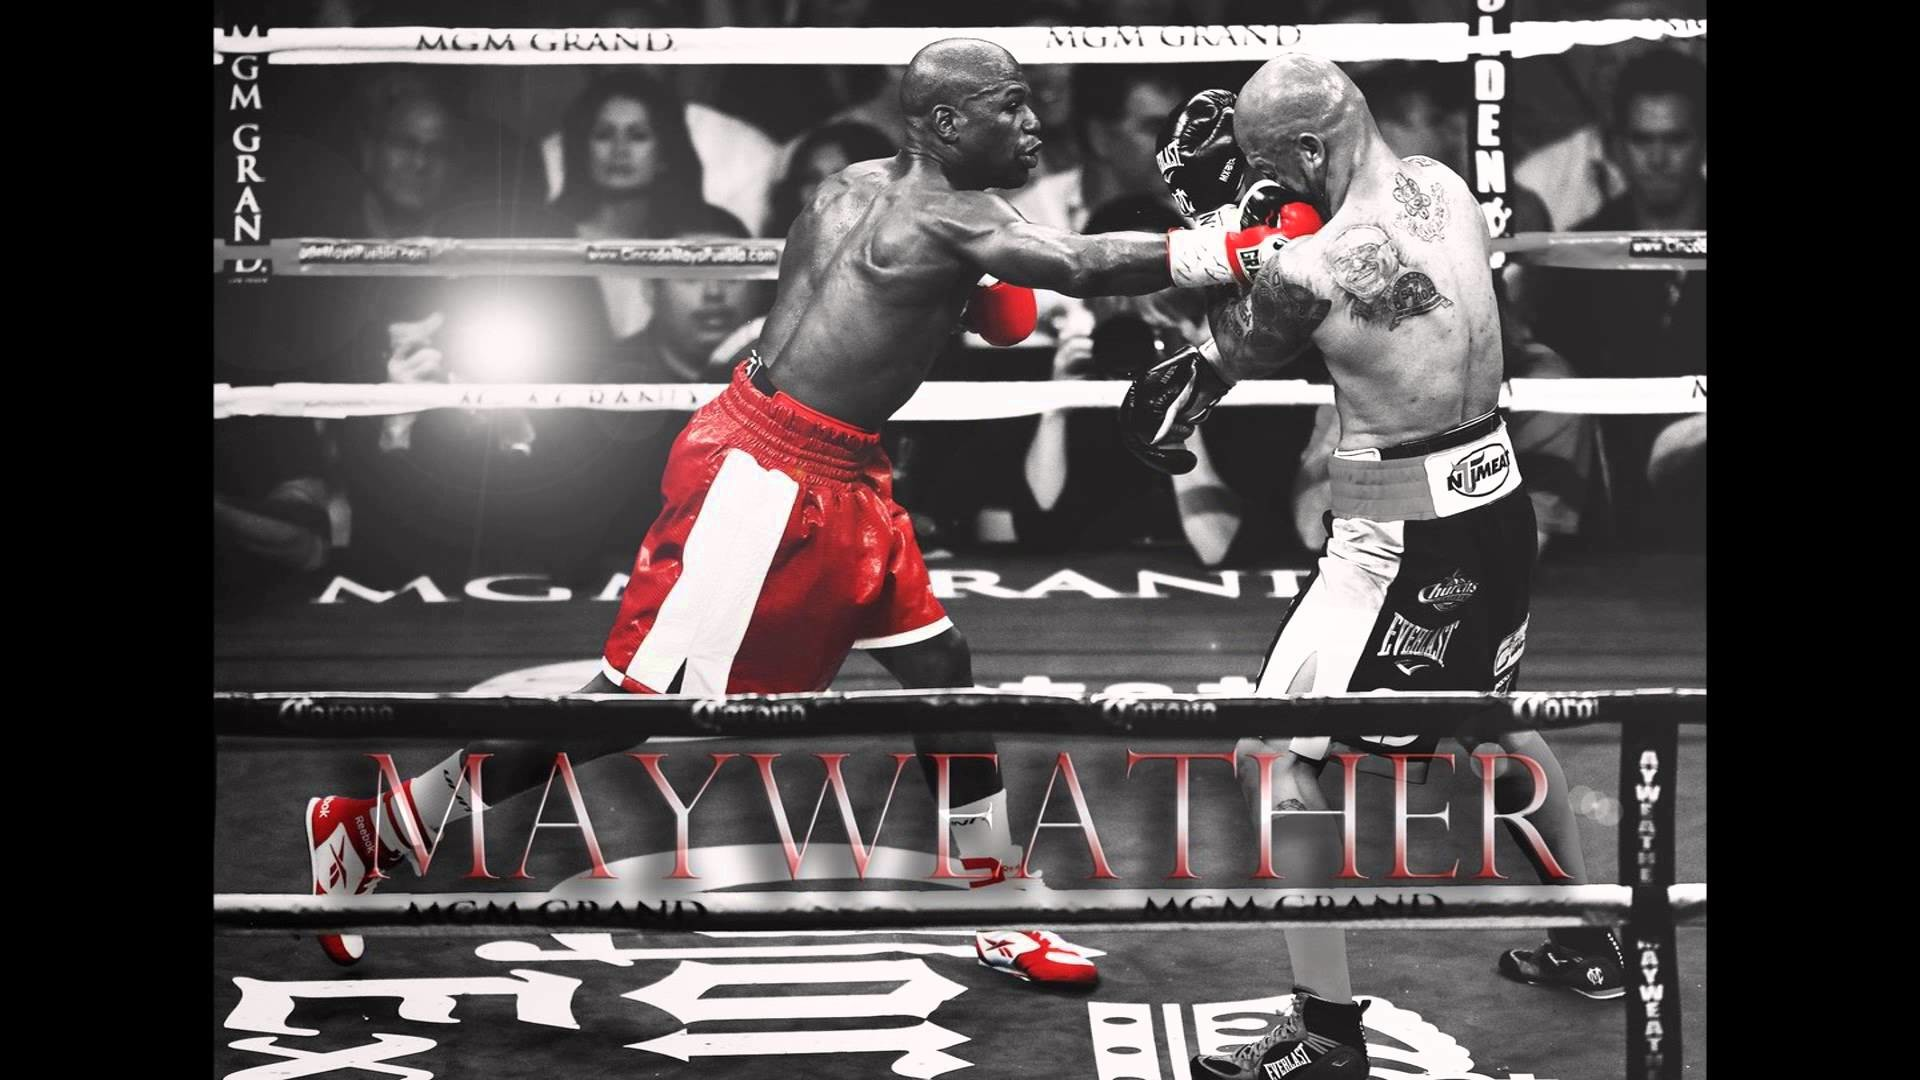 The money team wallpaper 69 images 1920x1080 floyd money mayweather hard work dedicationtbe the money team thecheapjerseys Gallery